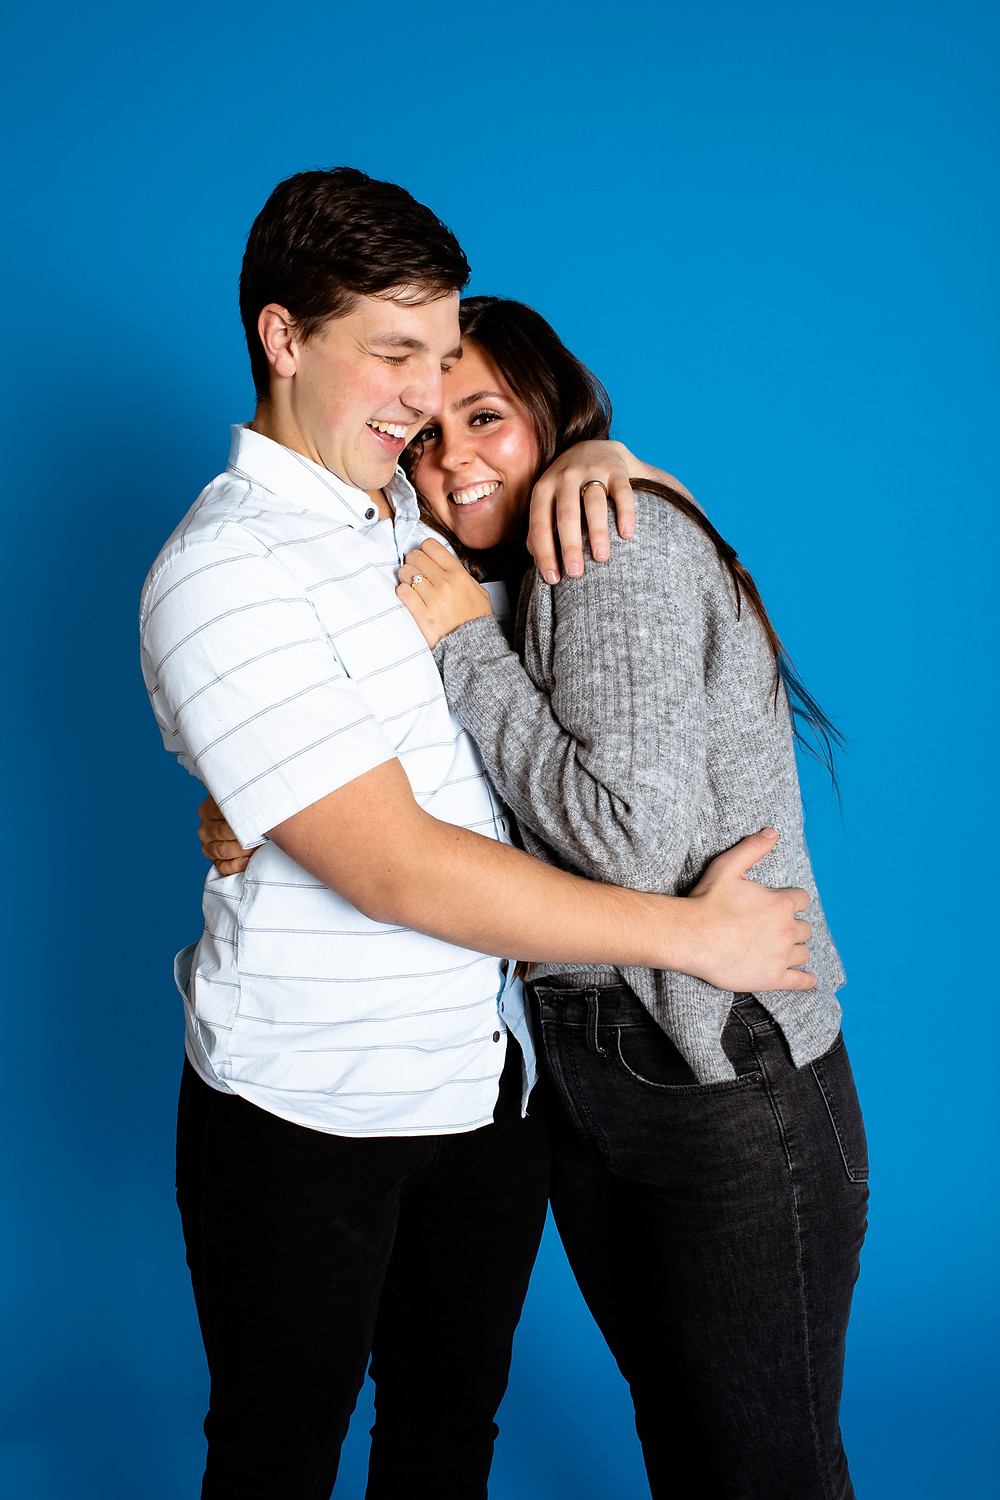 blue studio backdrop for couples photography session